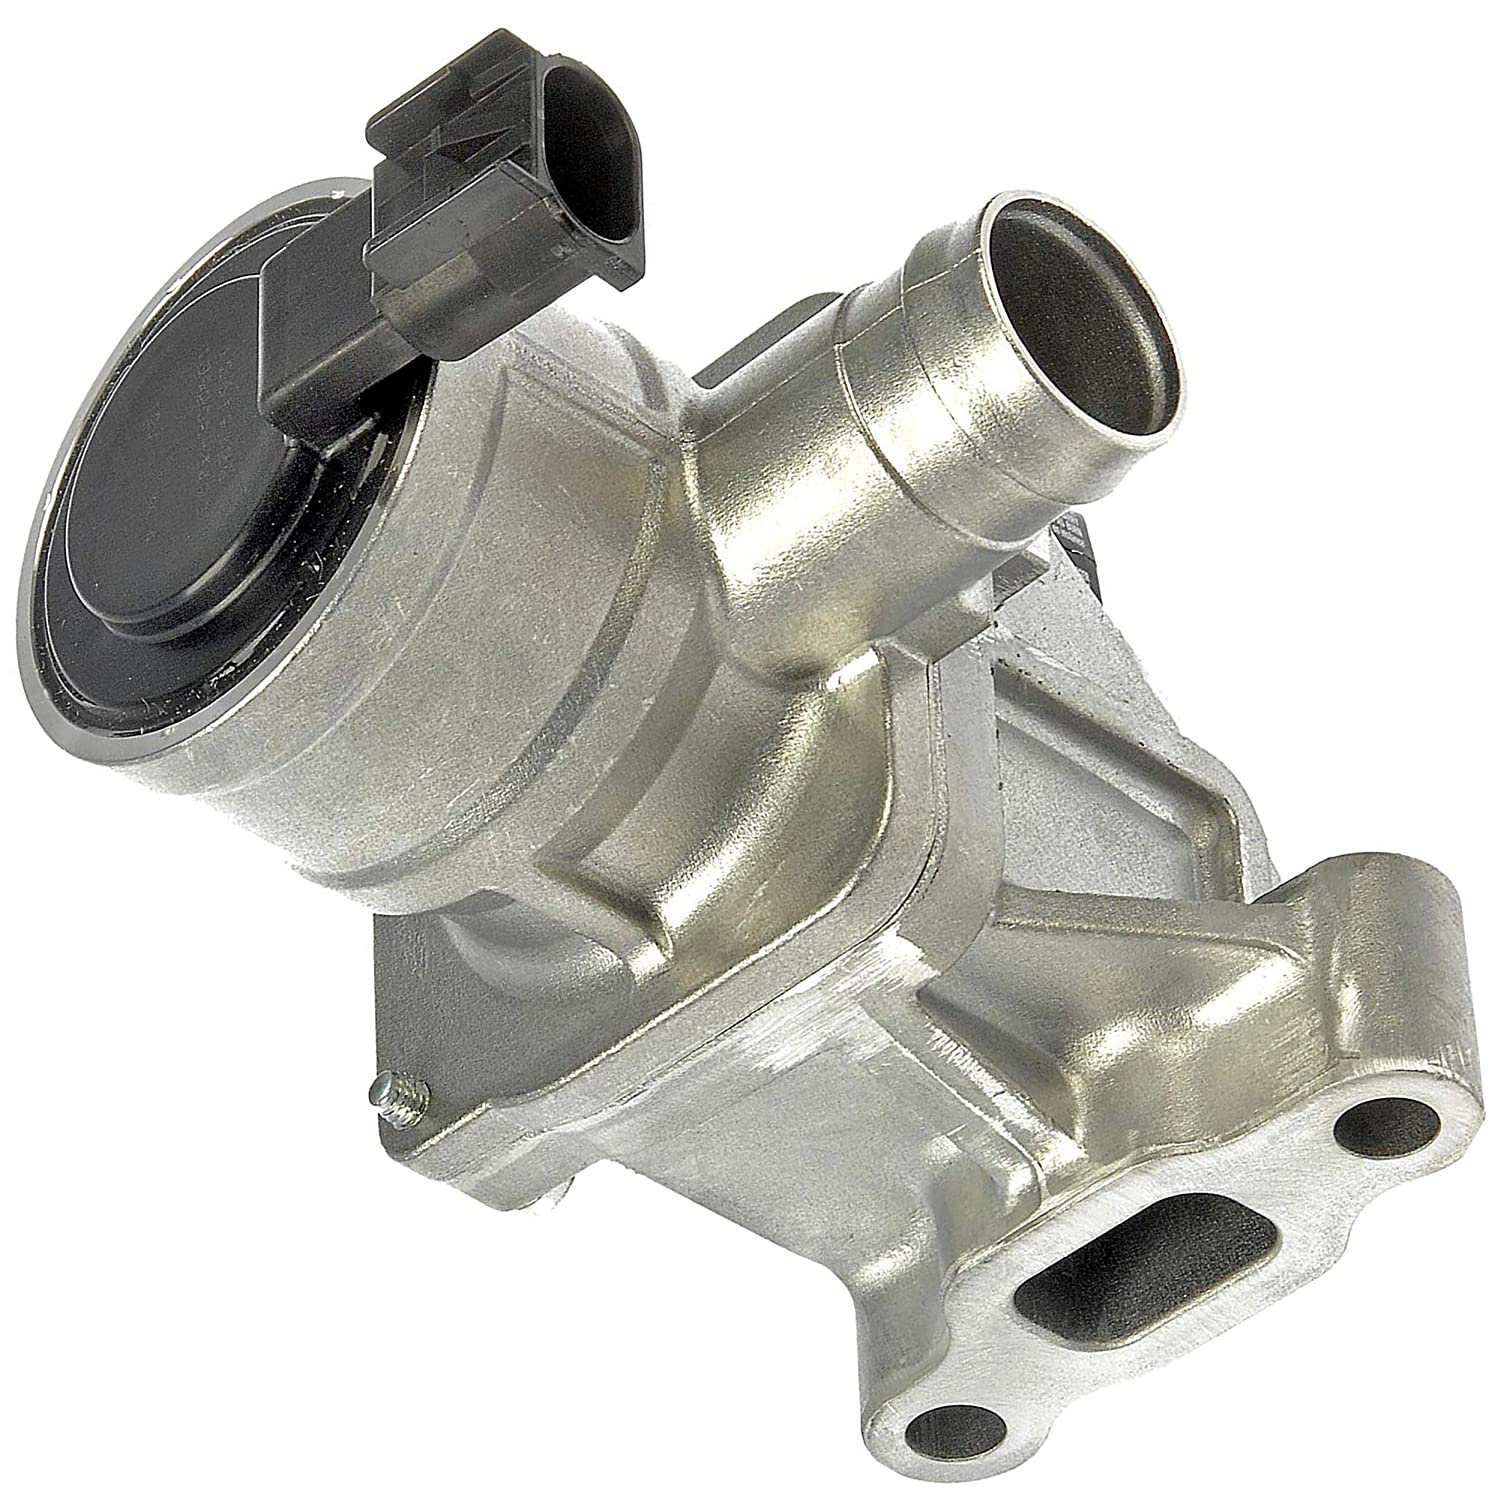 OES Genuine Air Inject Check Valve for select BMW models